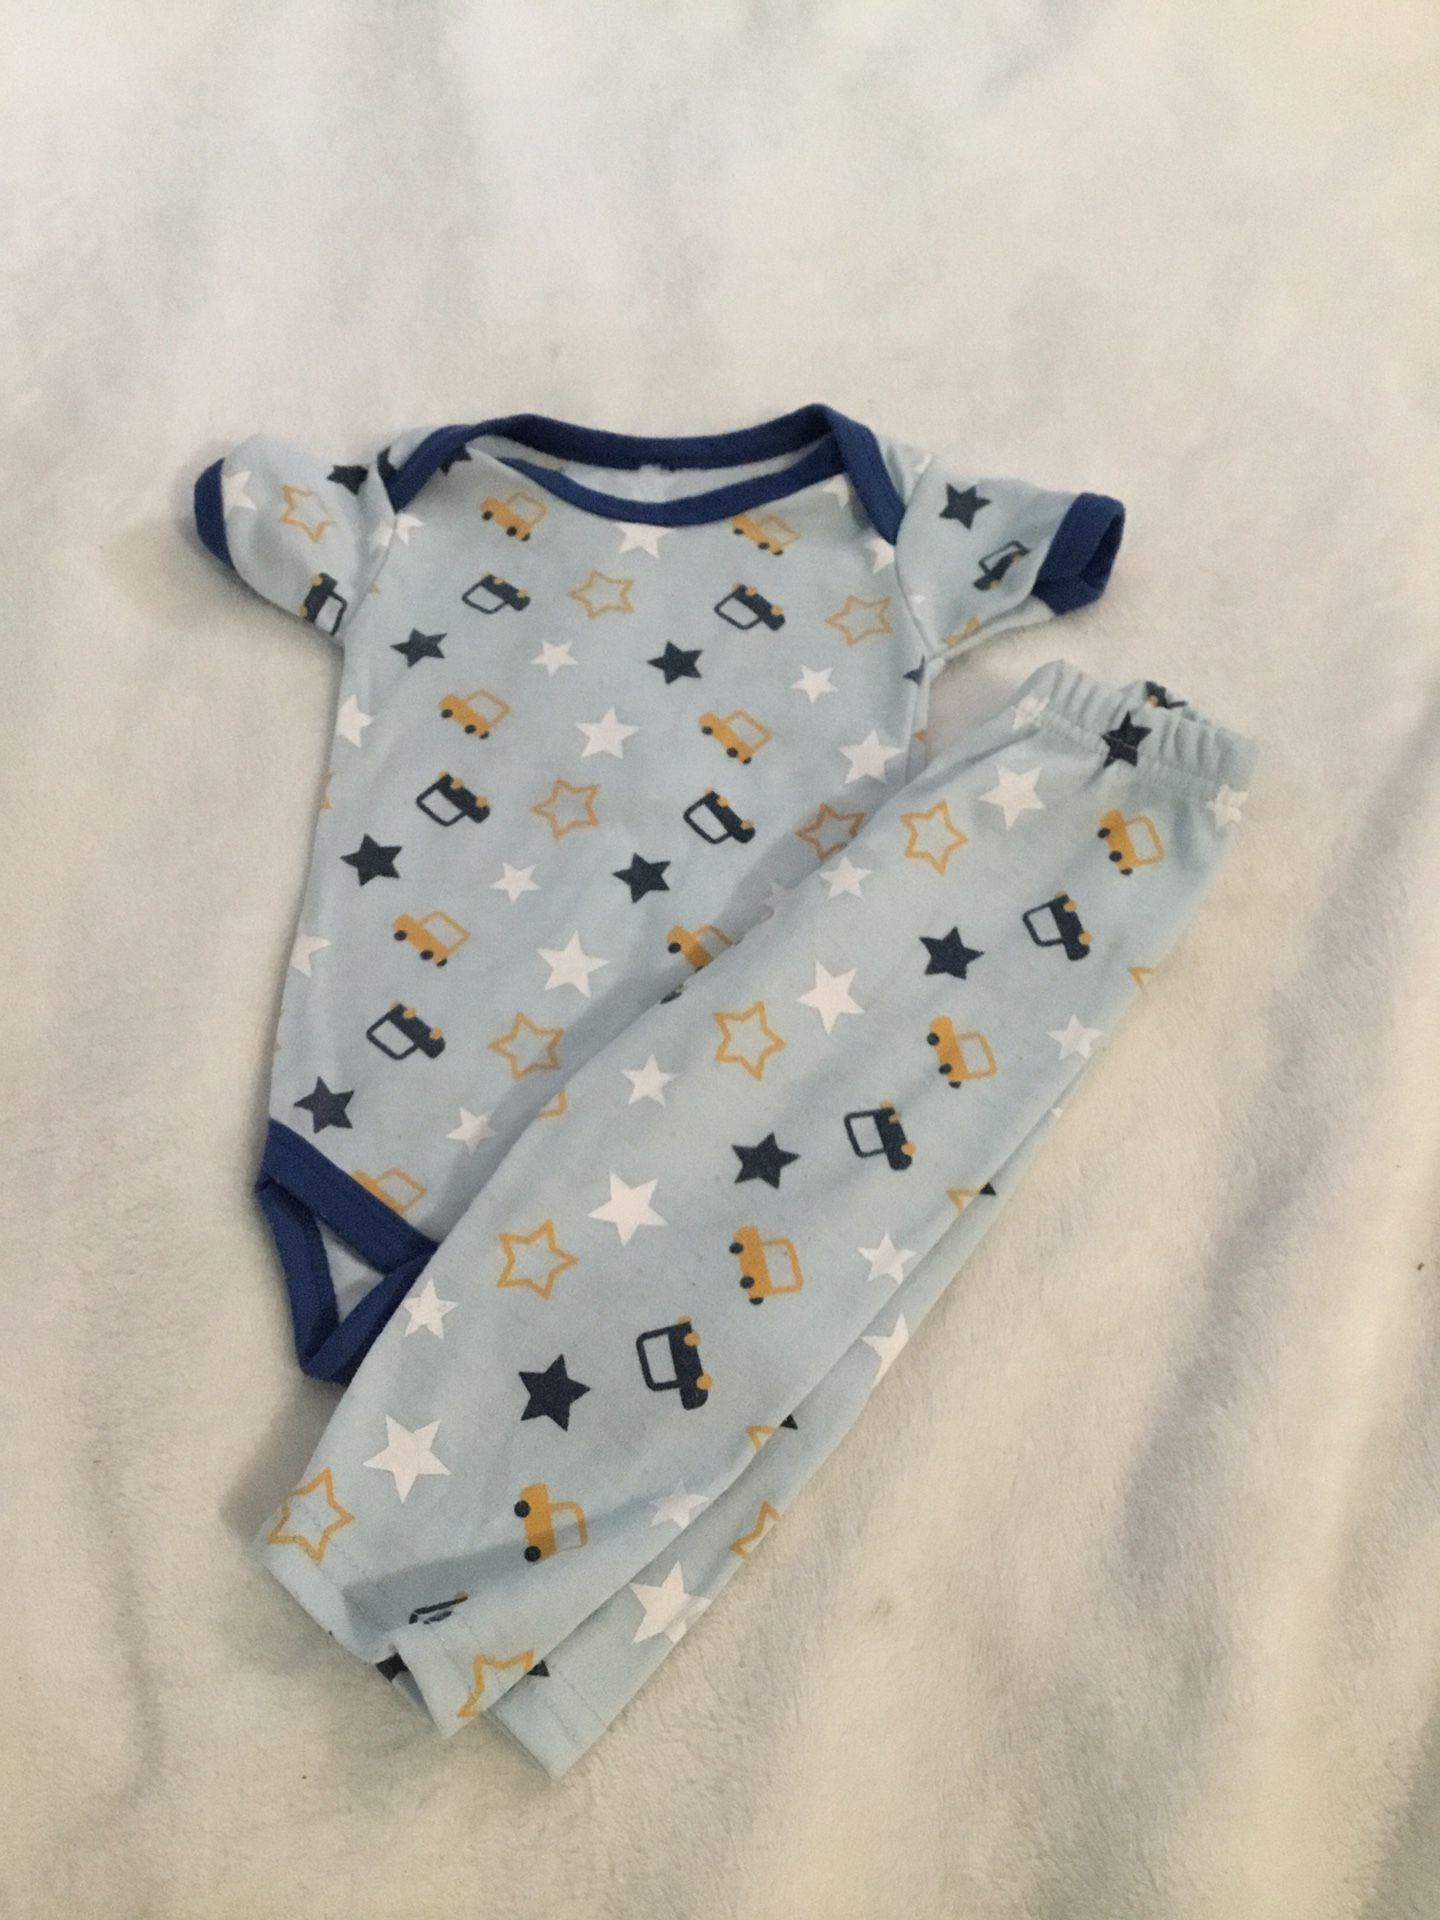 Set great condition for baby size 0-3 months 💖💖👶👶❤️b